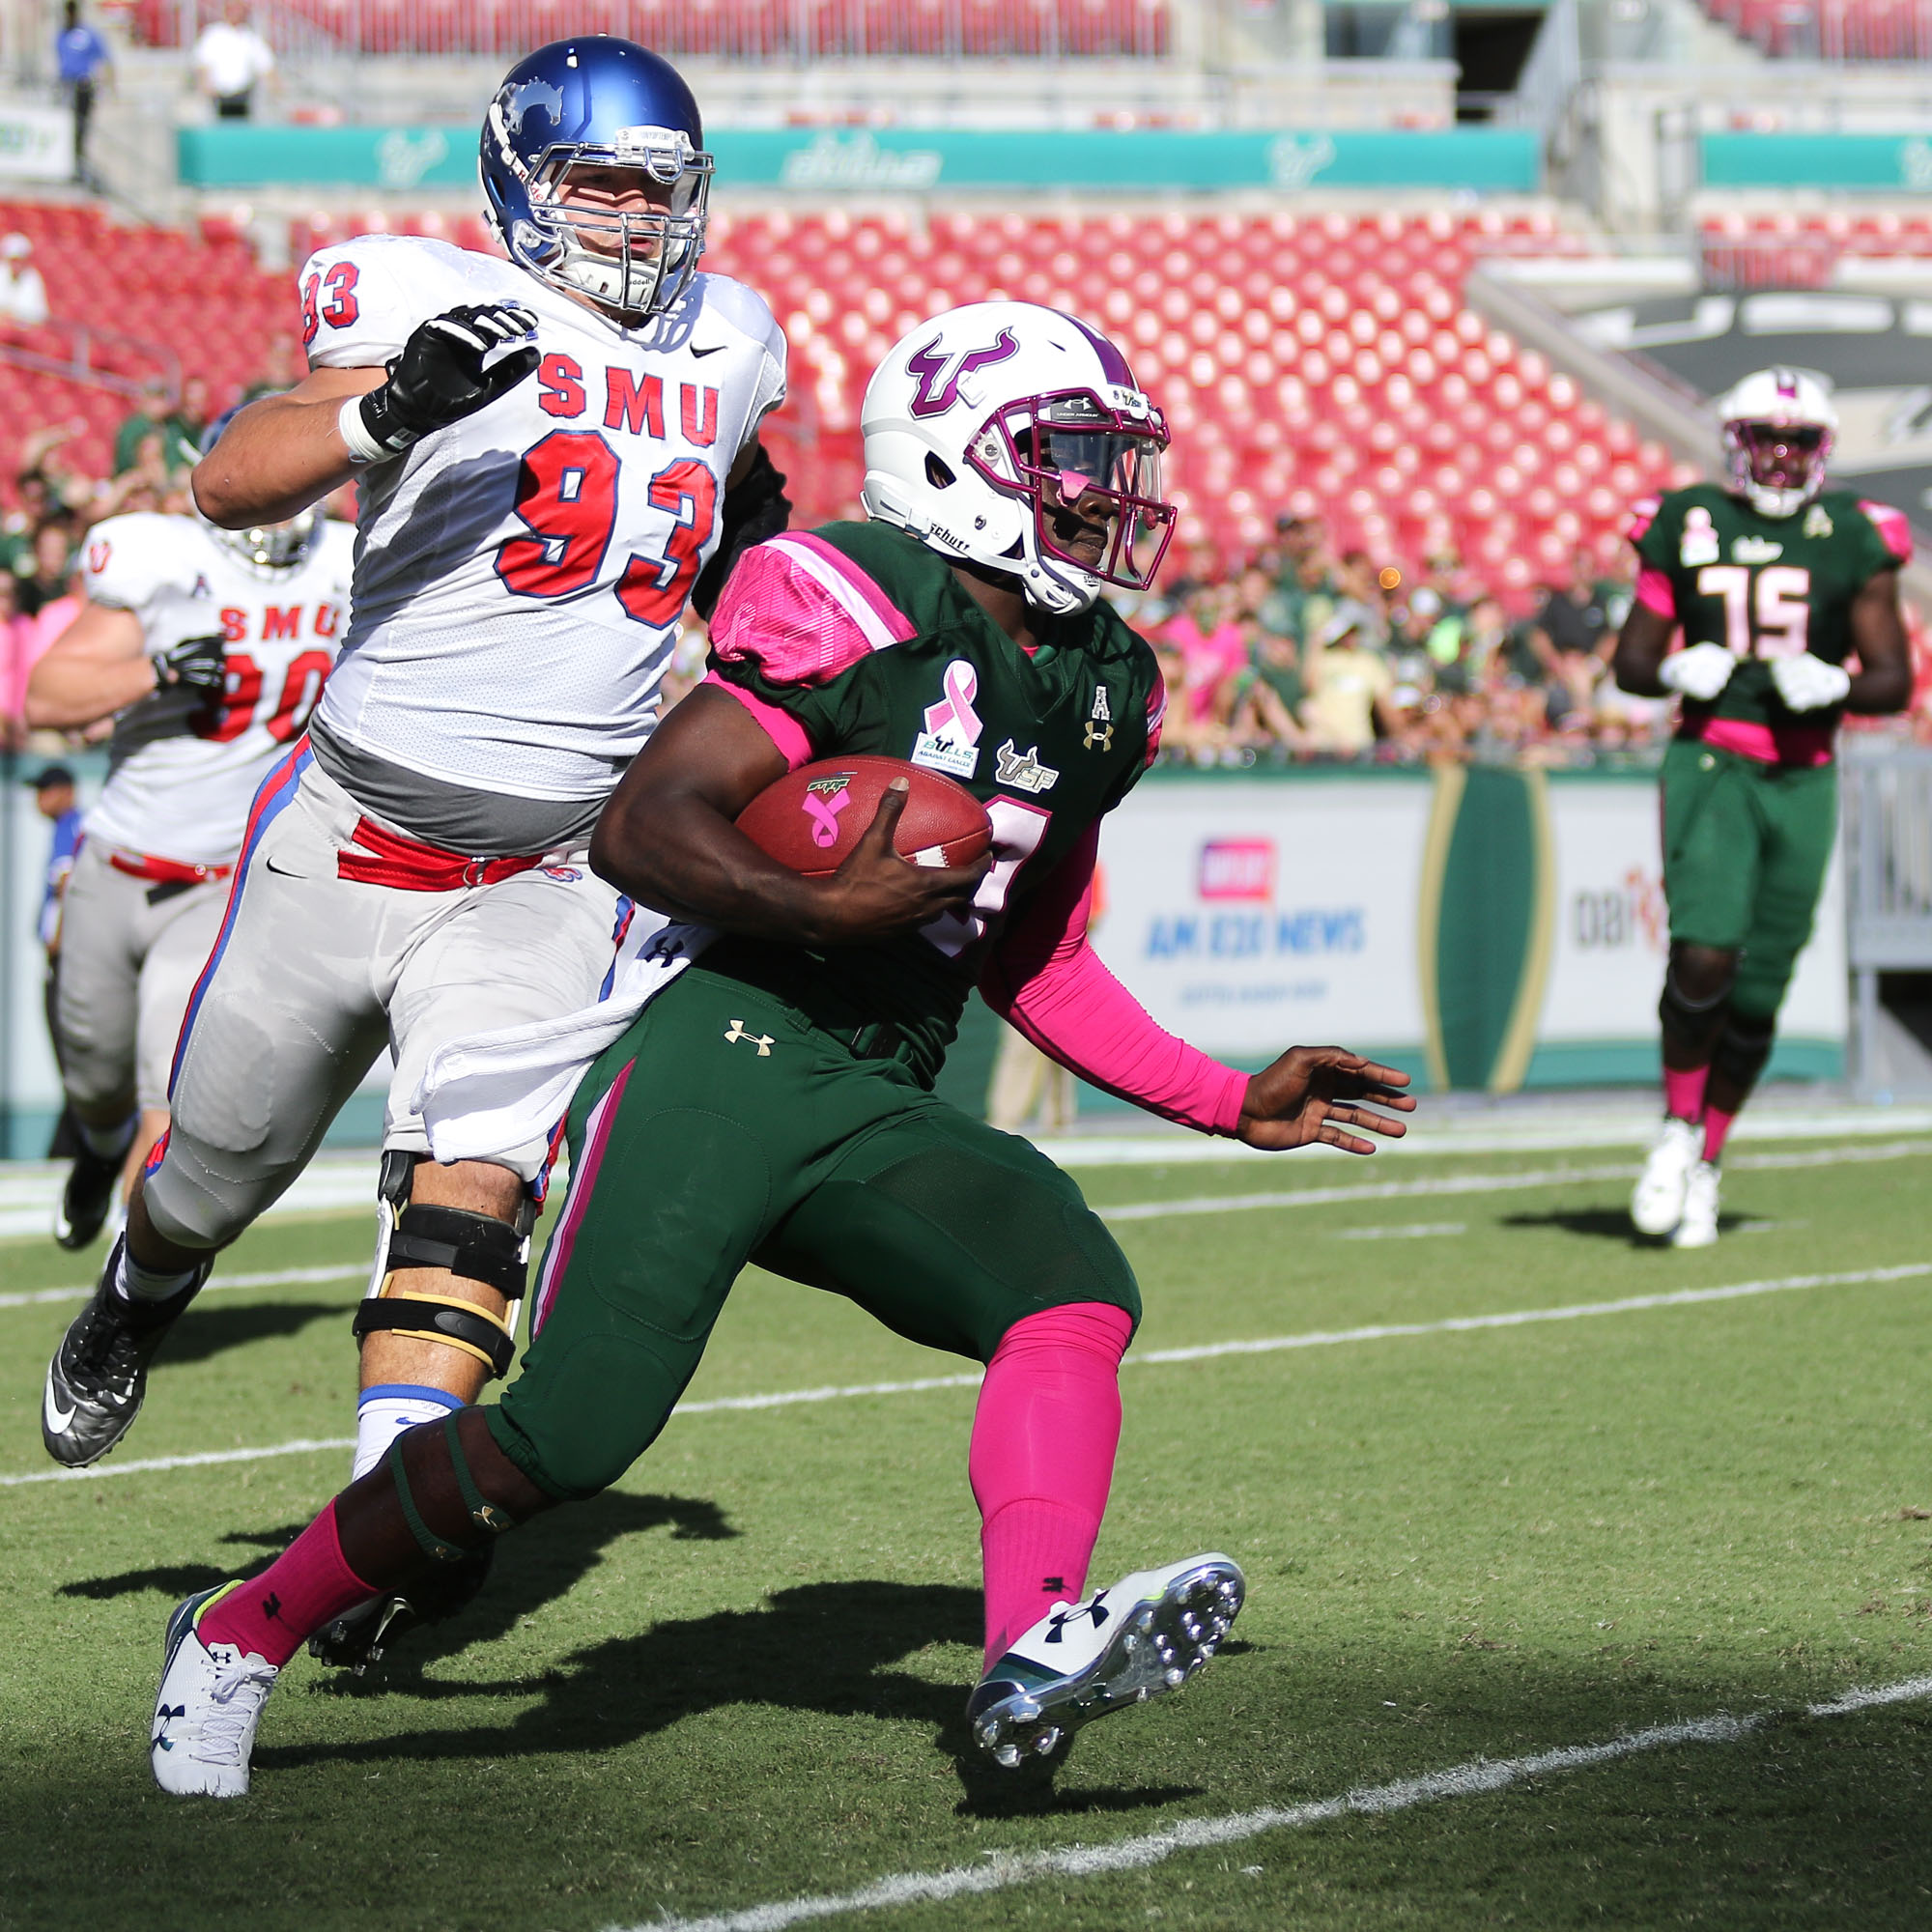 Flowers' 201 rushing yards set a single-game record for USF quarterbacks./ANDREW J. KRAMER